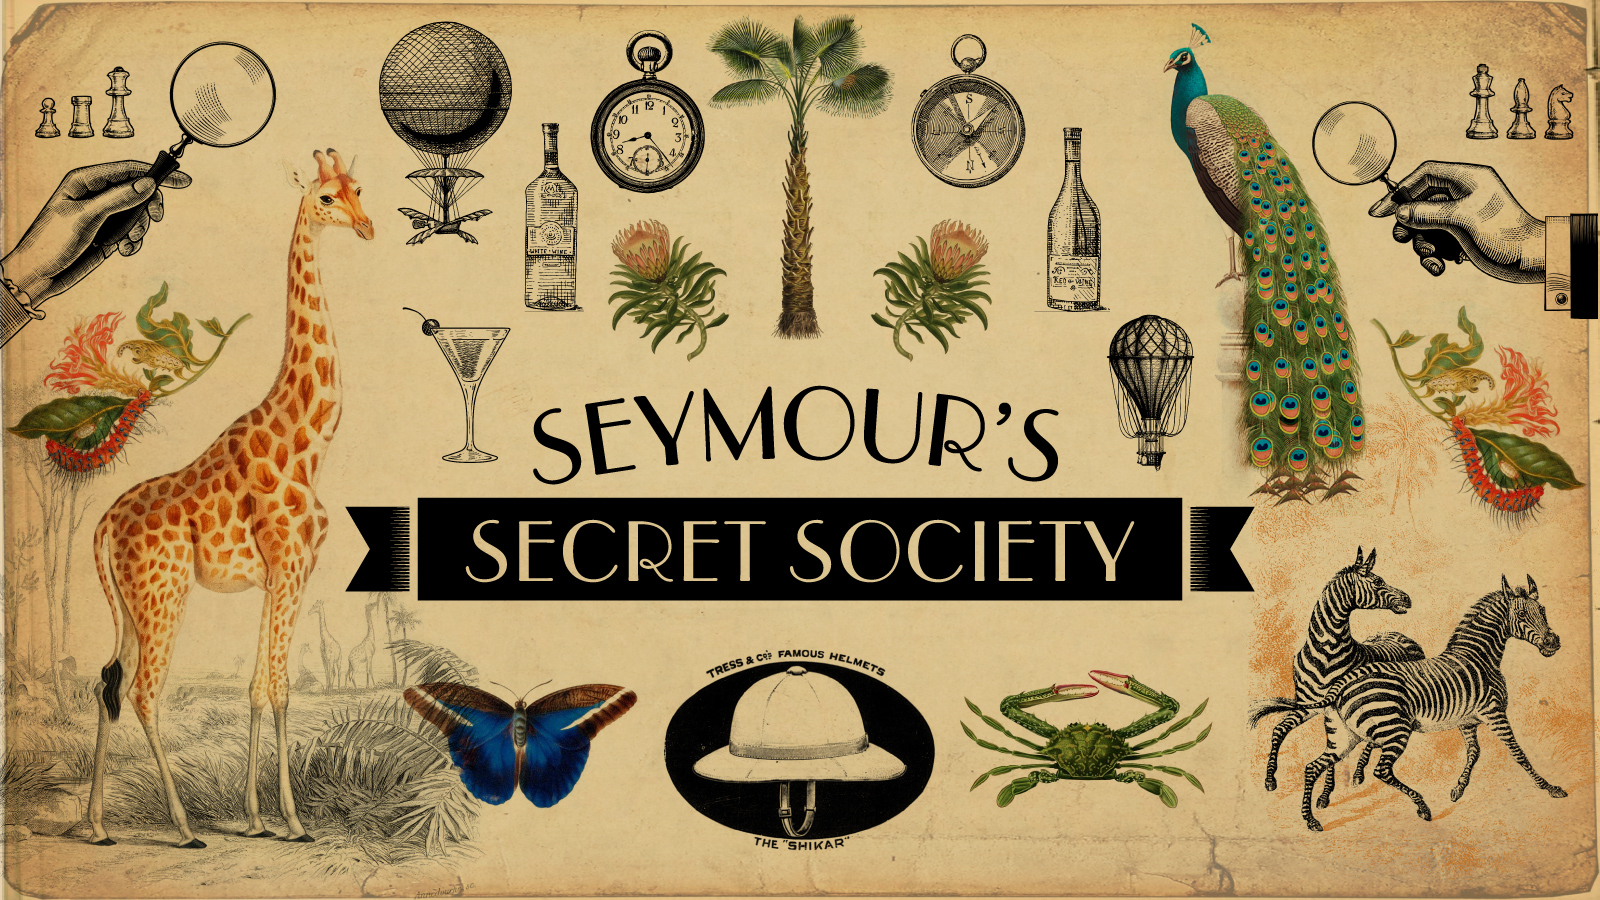 Special offers and invites await you as a member of   Seymour's Secret Society  .